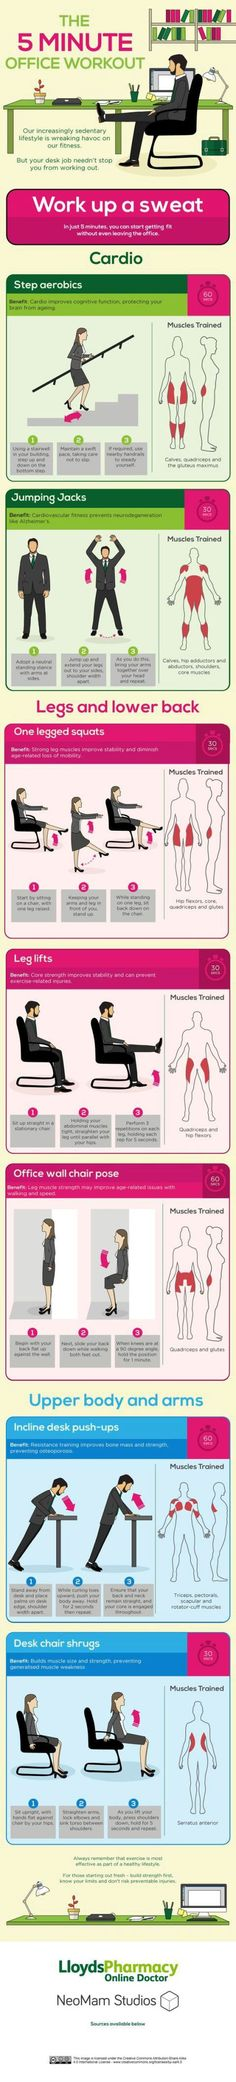 The 5 Minute Office Workout Fitness Infographic - Venngage Infographic Examples Desk Workout, Workout At Work, Workout Challenge, Workout Tips, Workout Fitness, Workout Circuit, Squat Workout, Office Exercise, Office Workouts